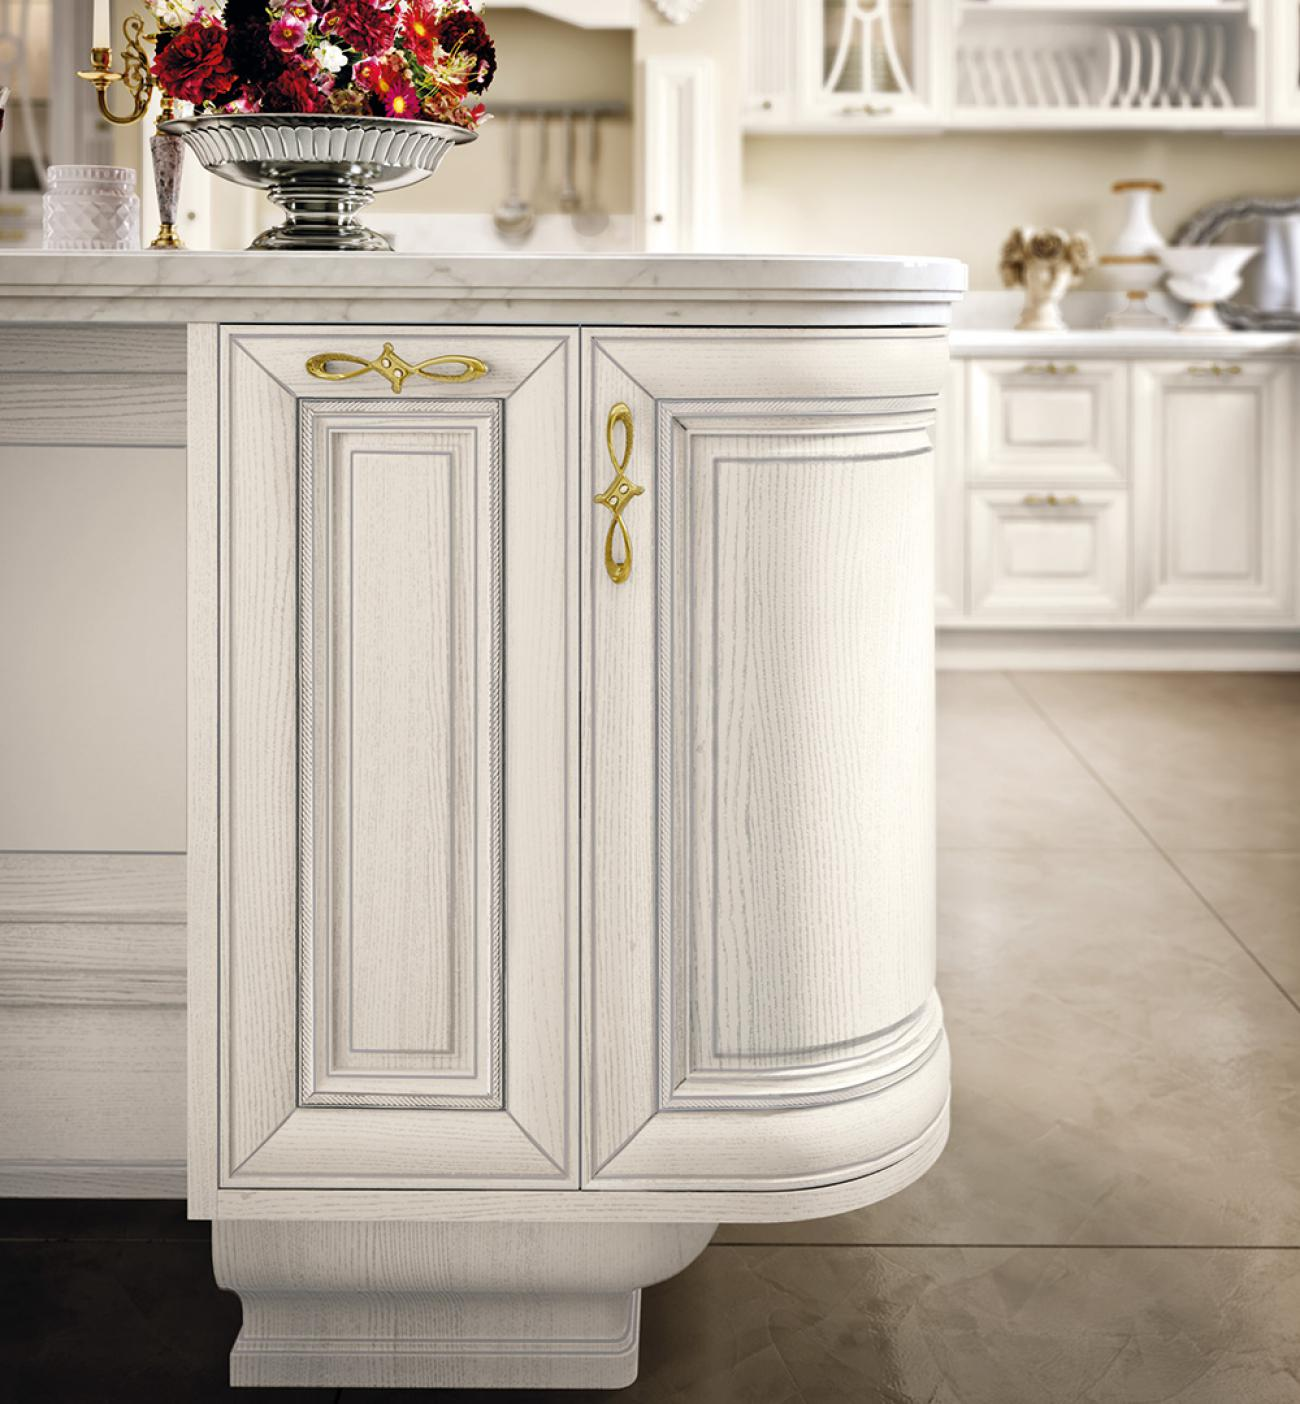 Classic Kitchens - Pantheon - 03